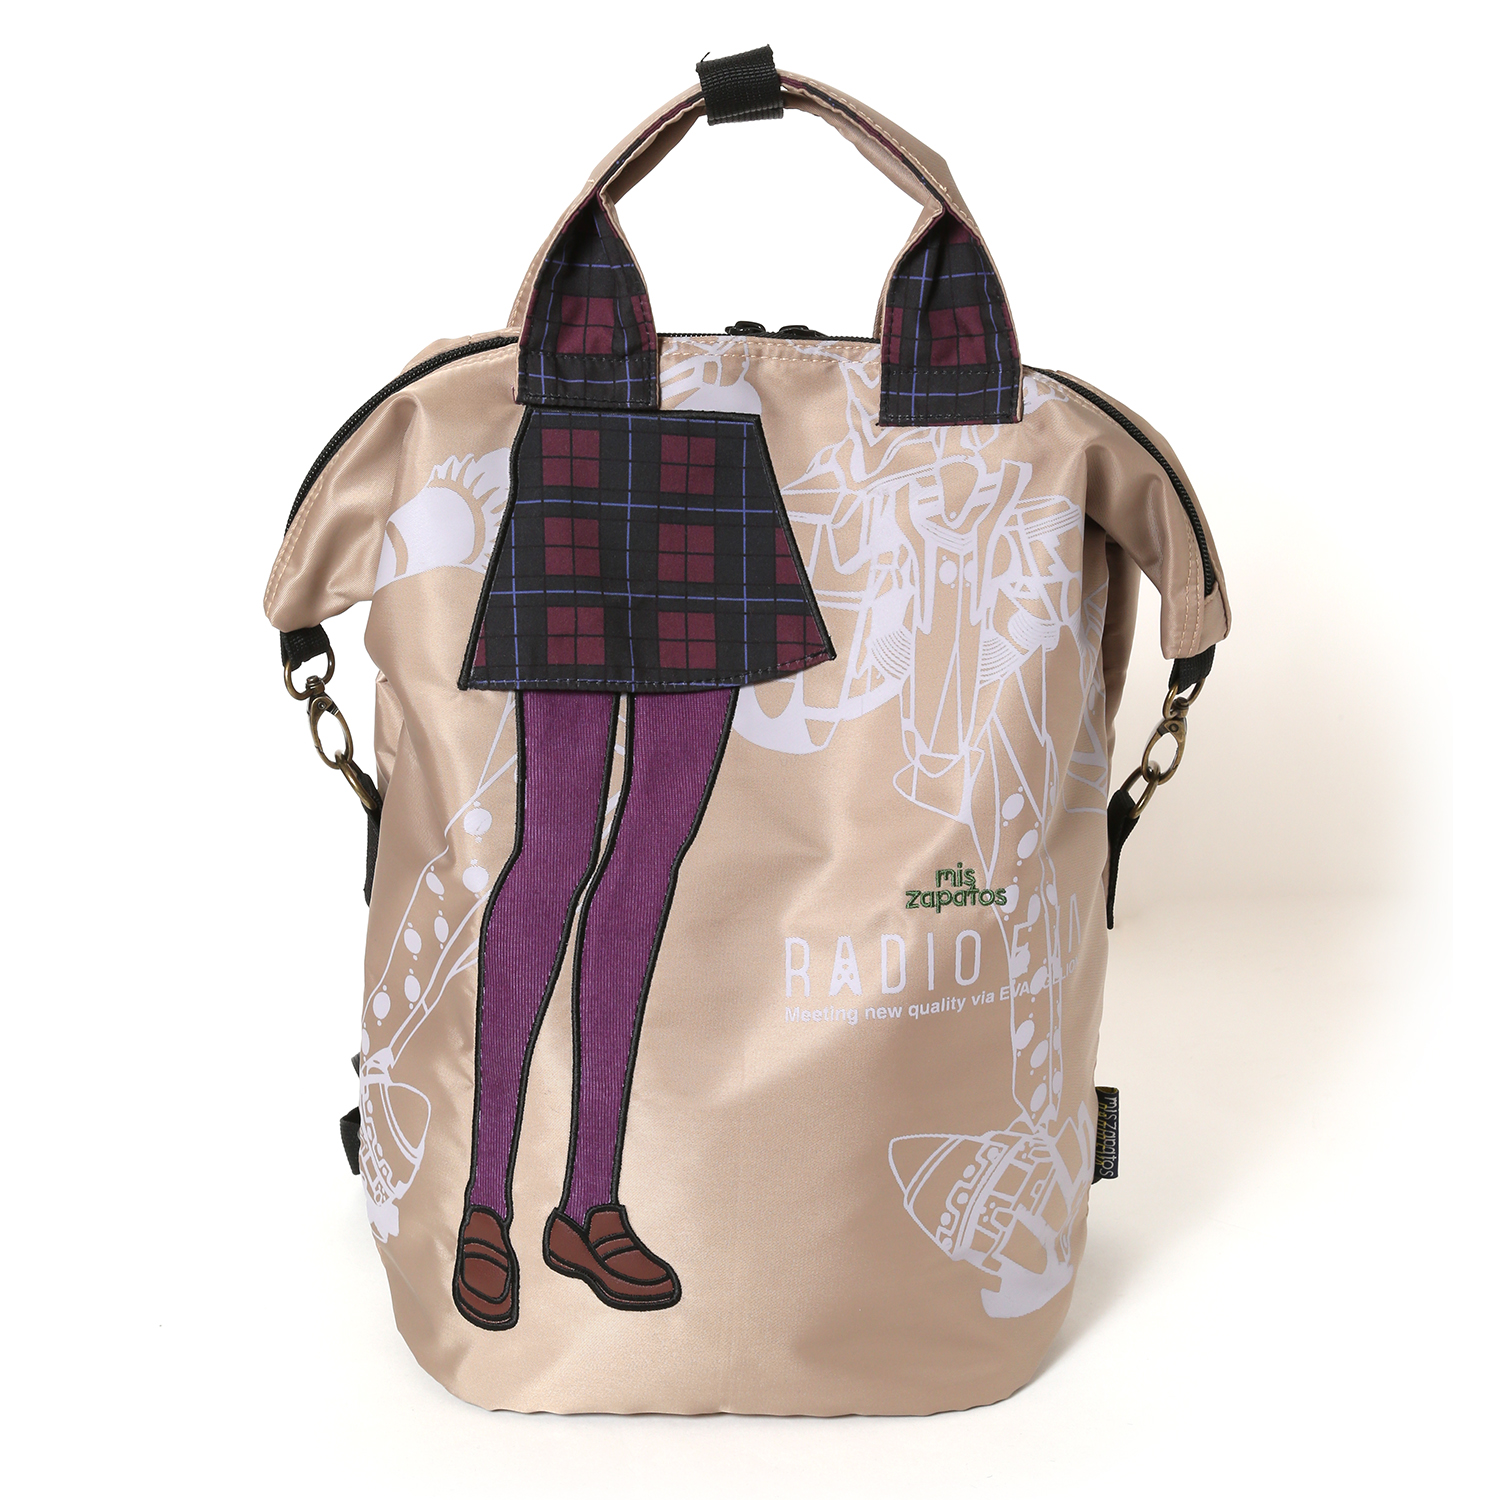 EVANGELION Pilot 3way Back Pack by mis zapatos (ベージュ(マリ))